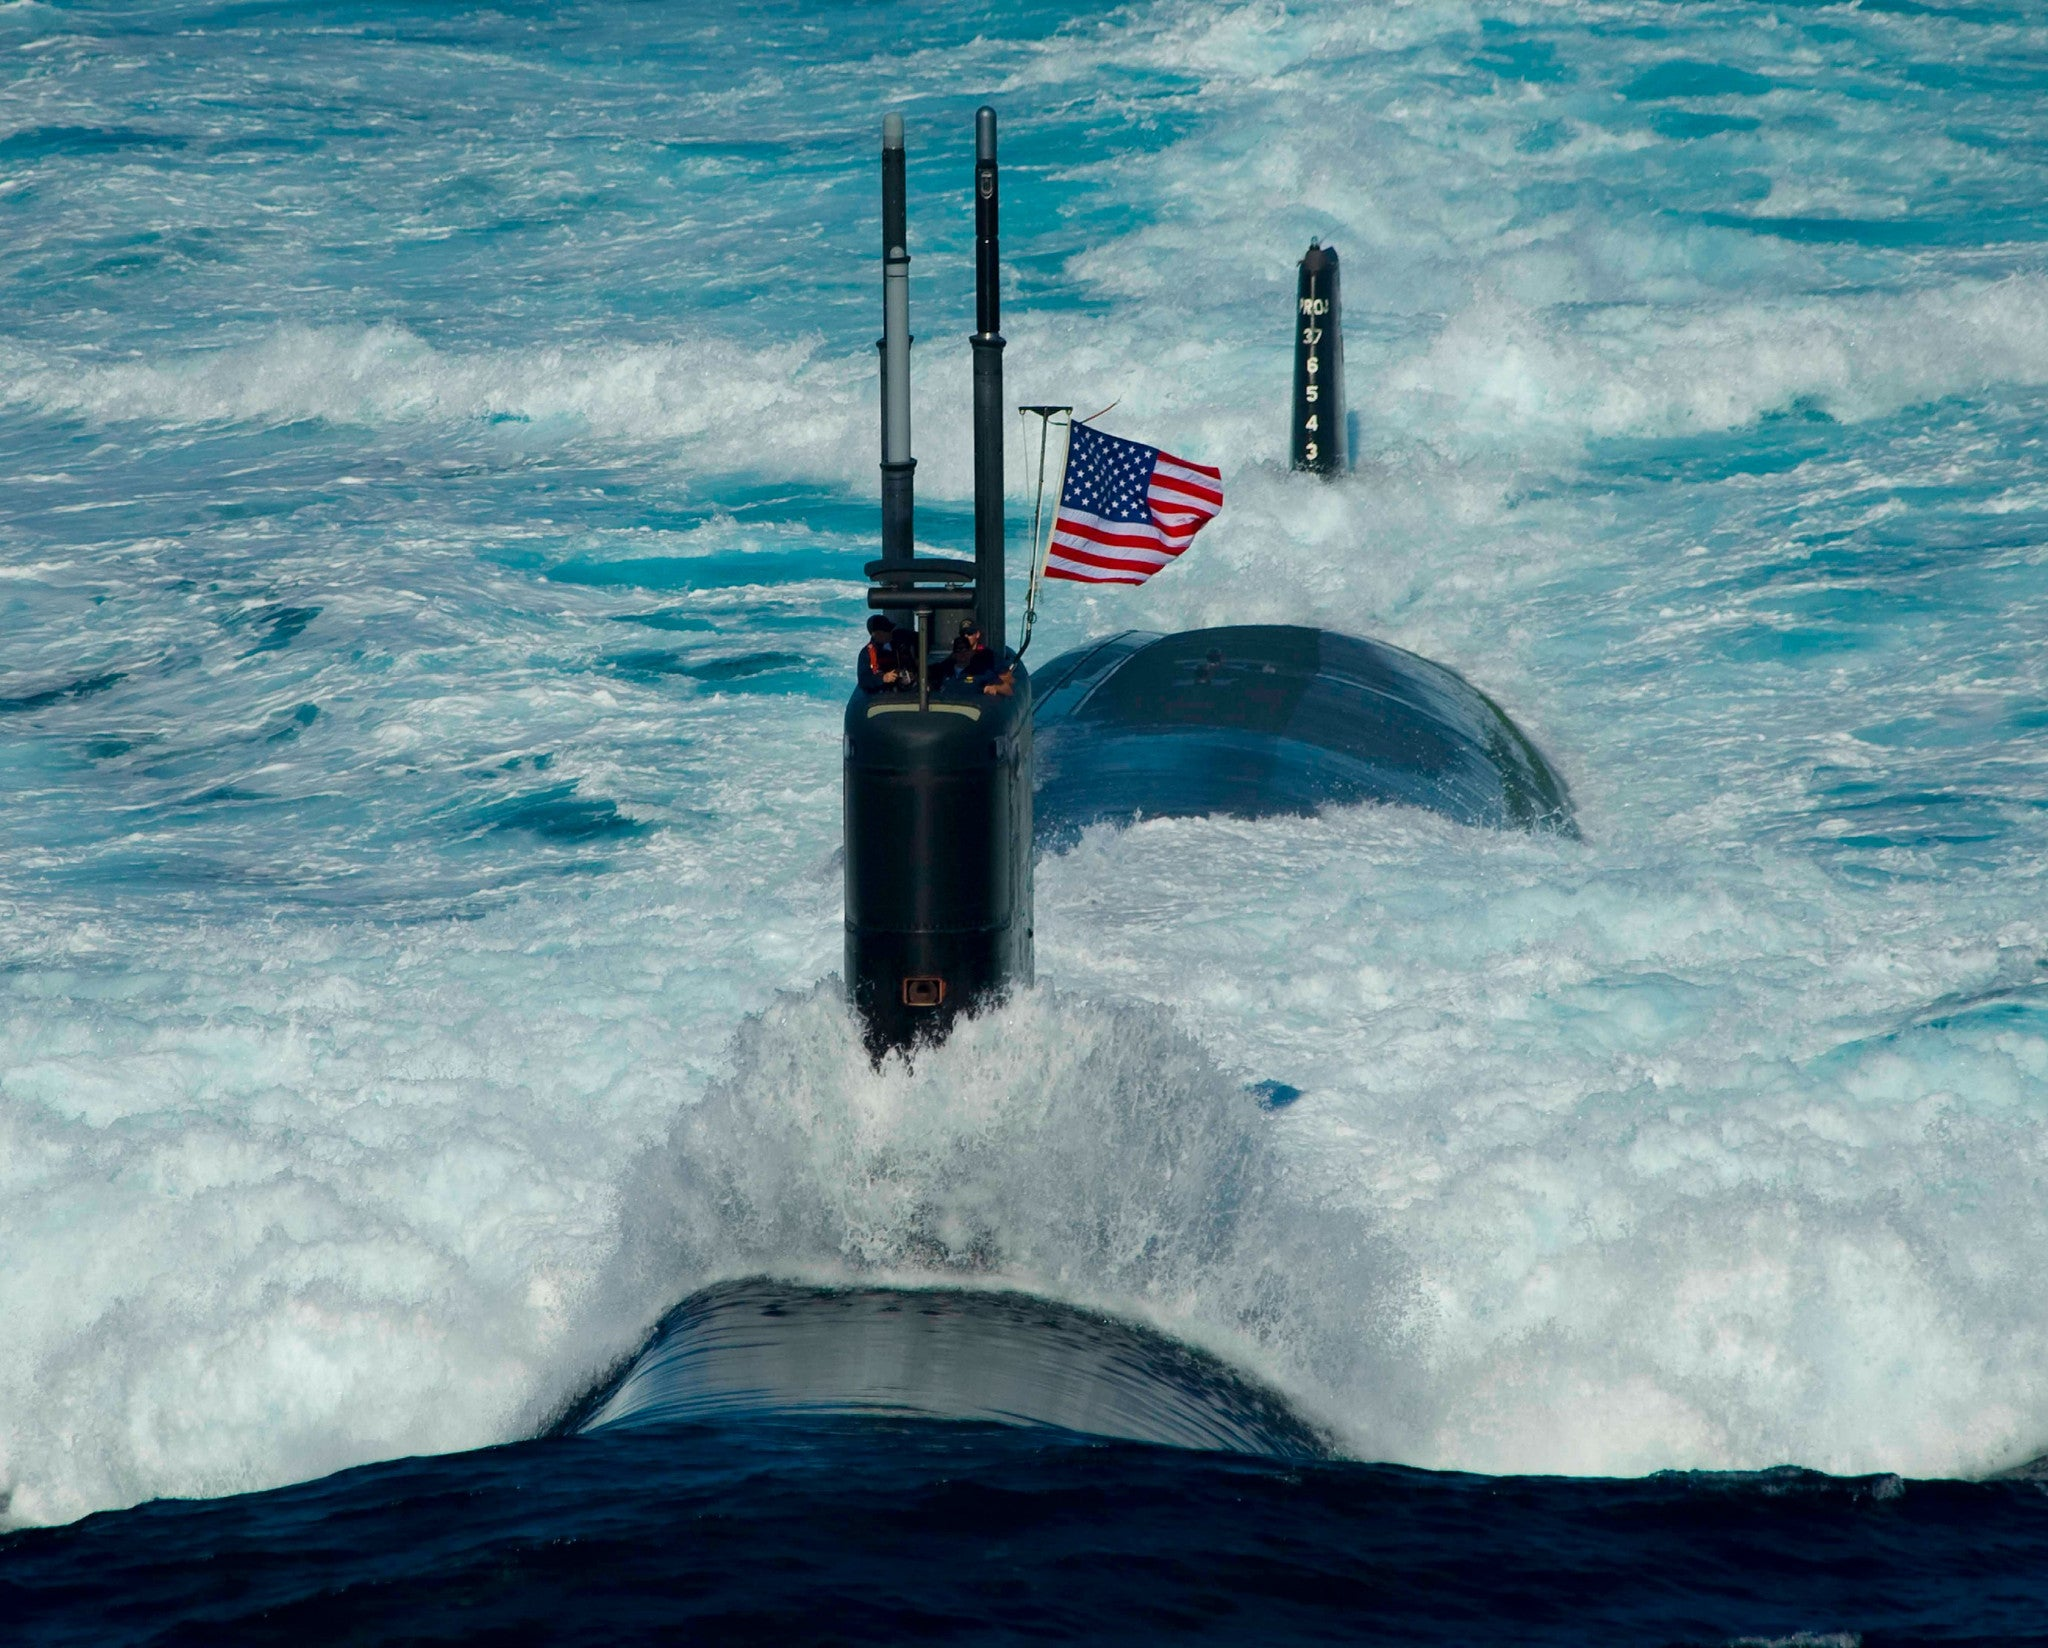 "Submarine USS Tucson SSN-770 Sea of Japan July 26, 2010 - 8 x 10"" Photograph"